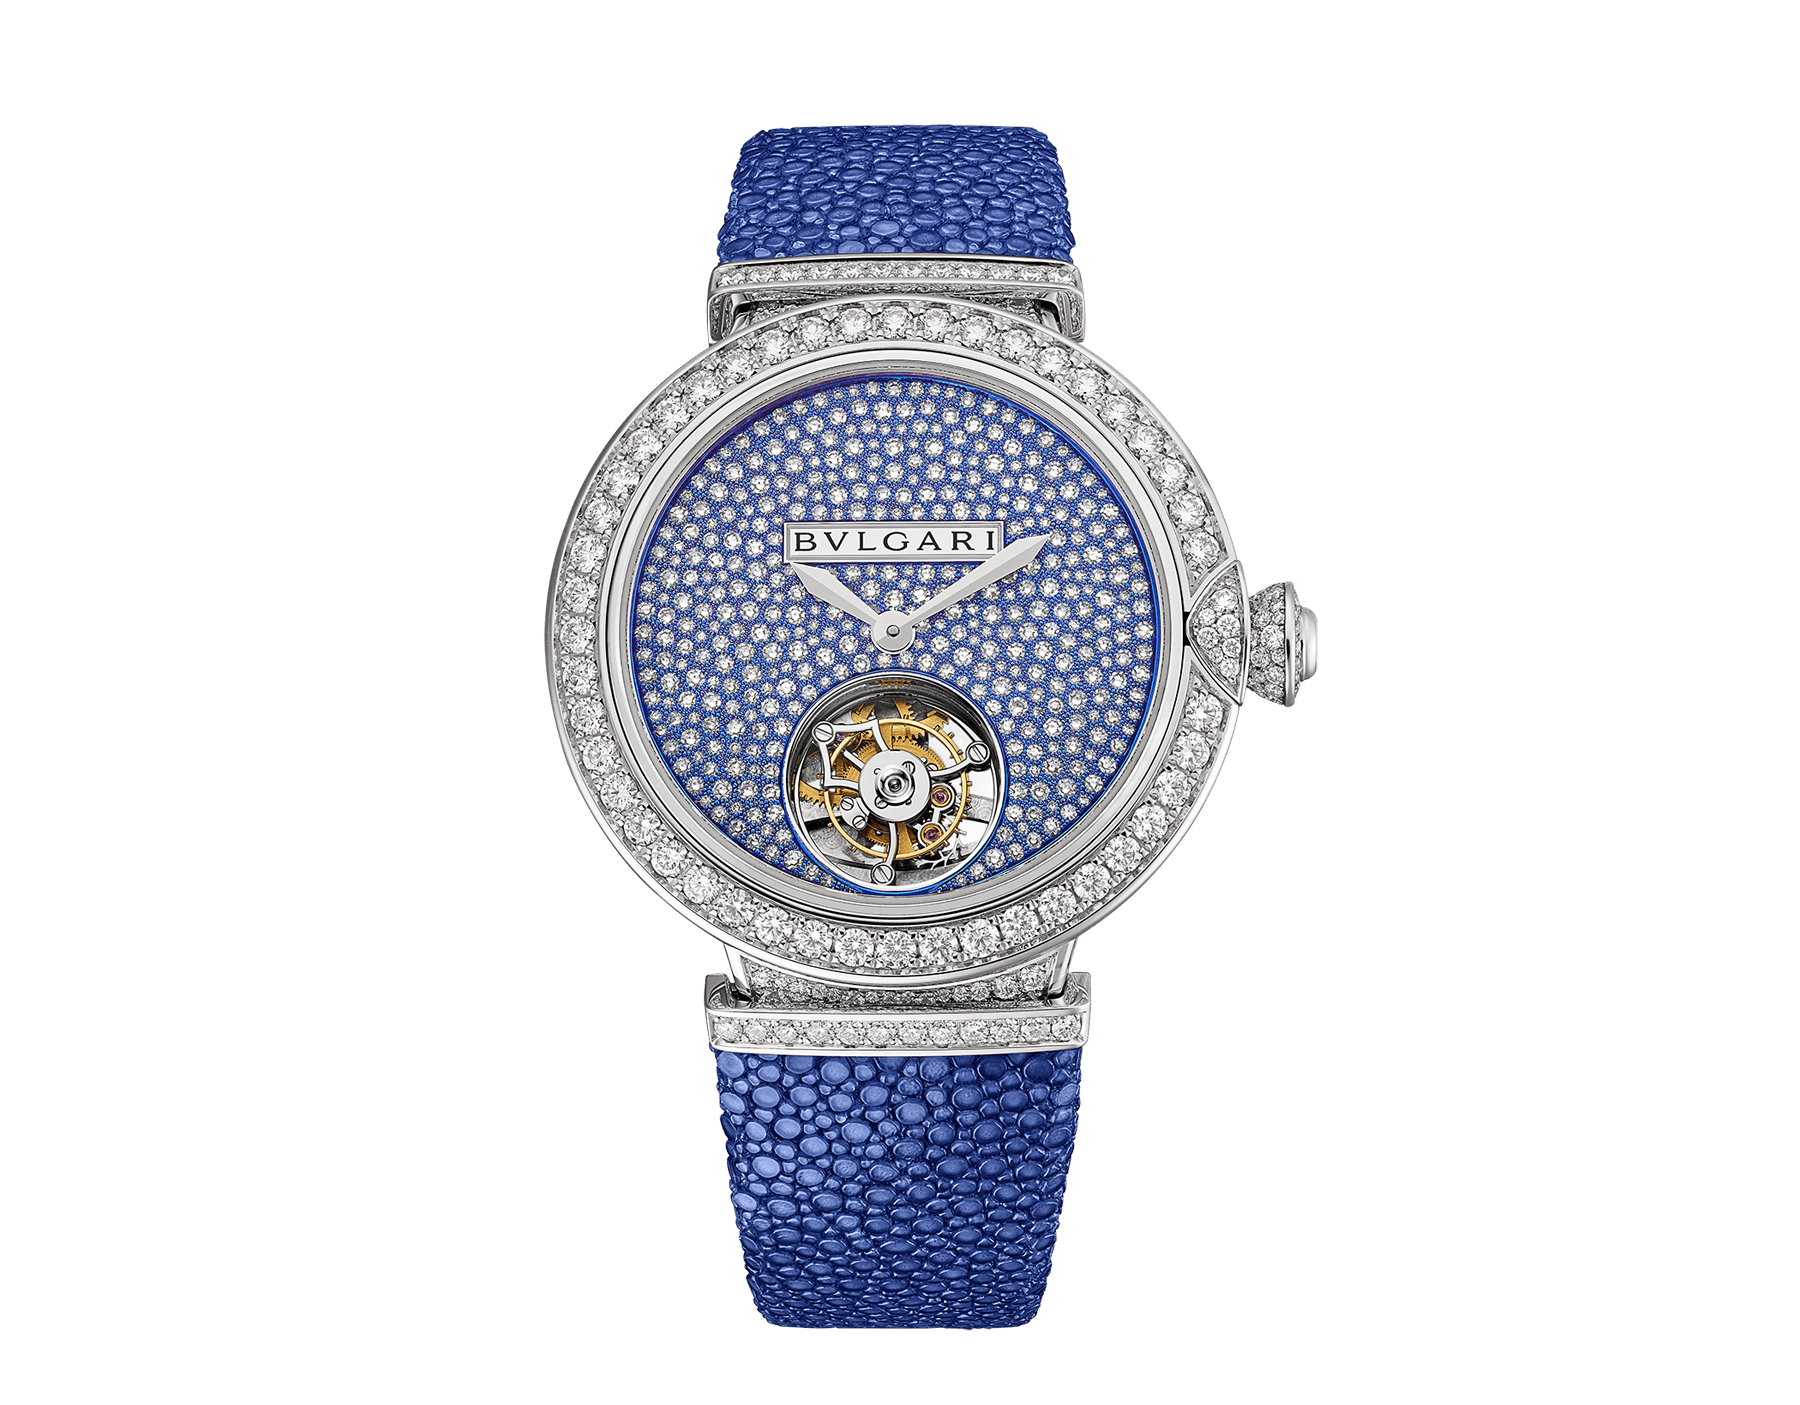 LVCEA Tourbillon Limited Edition watch with mechanical manufacture movement, automatic winding, see-through tourbillon, 18 kt white gold case set with round brilliant-cut diamonds, full-pavé dial with round brilliant-cut diamonds and blue colour finish, and blue galuchat bracelet 102881 image 1